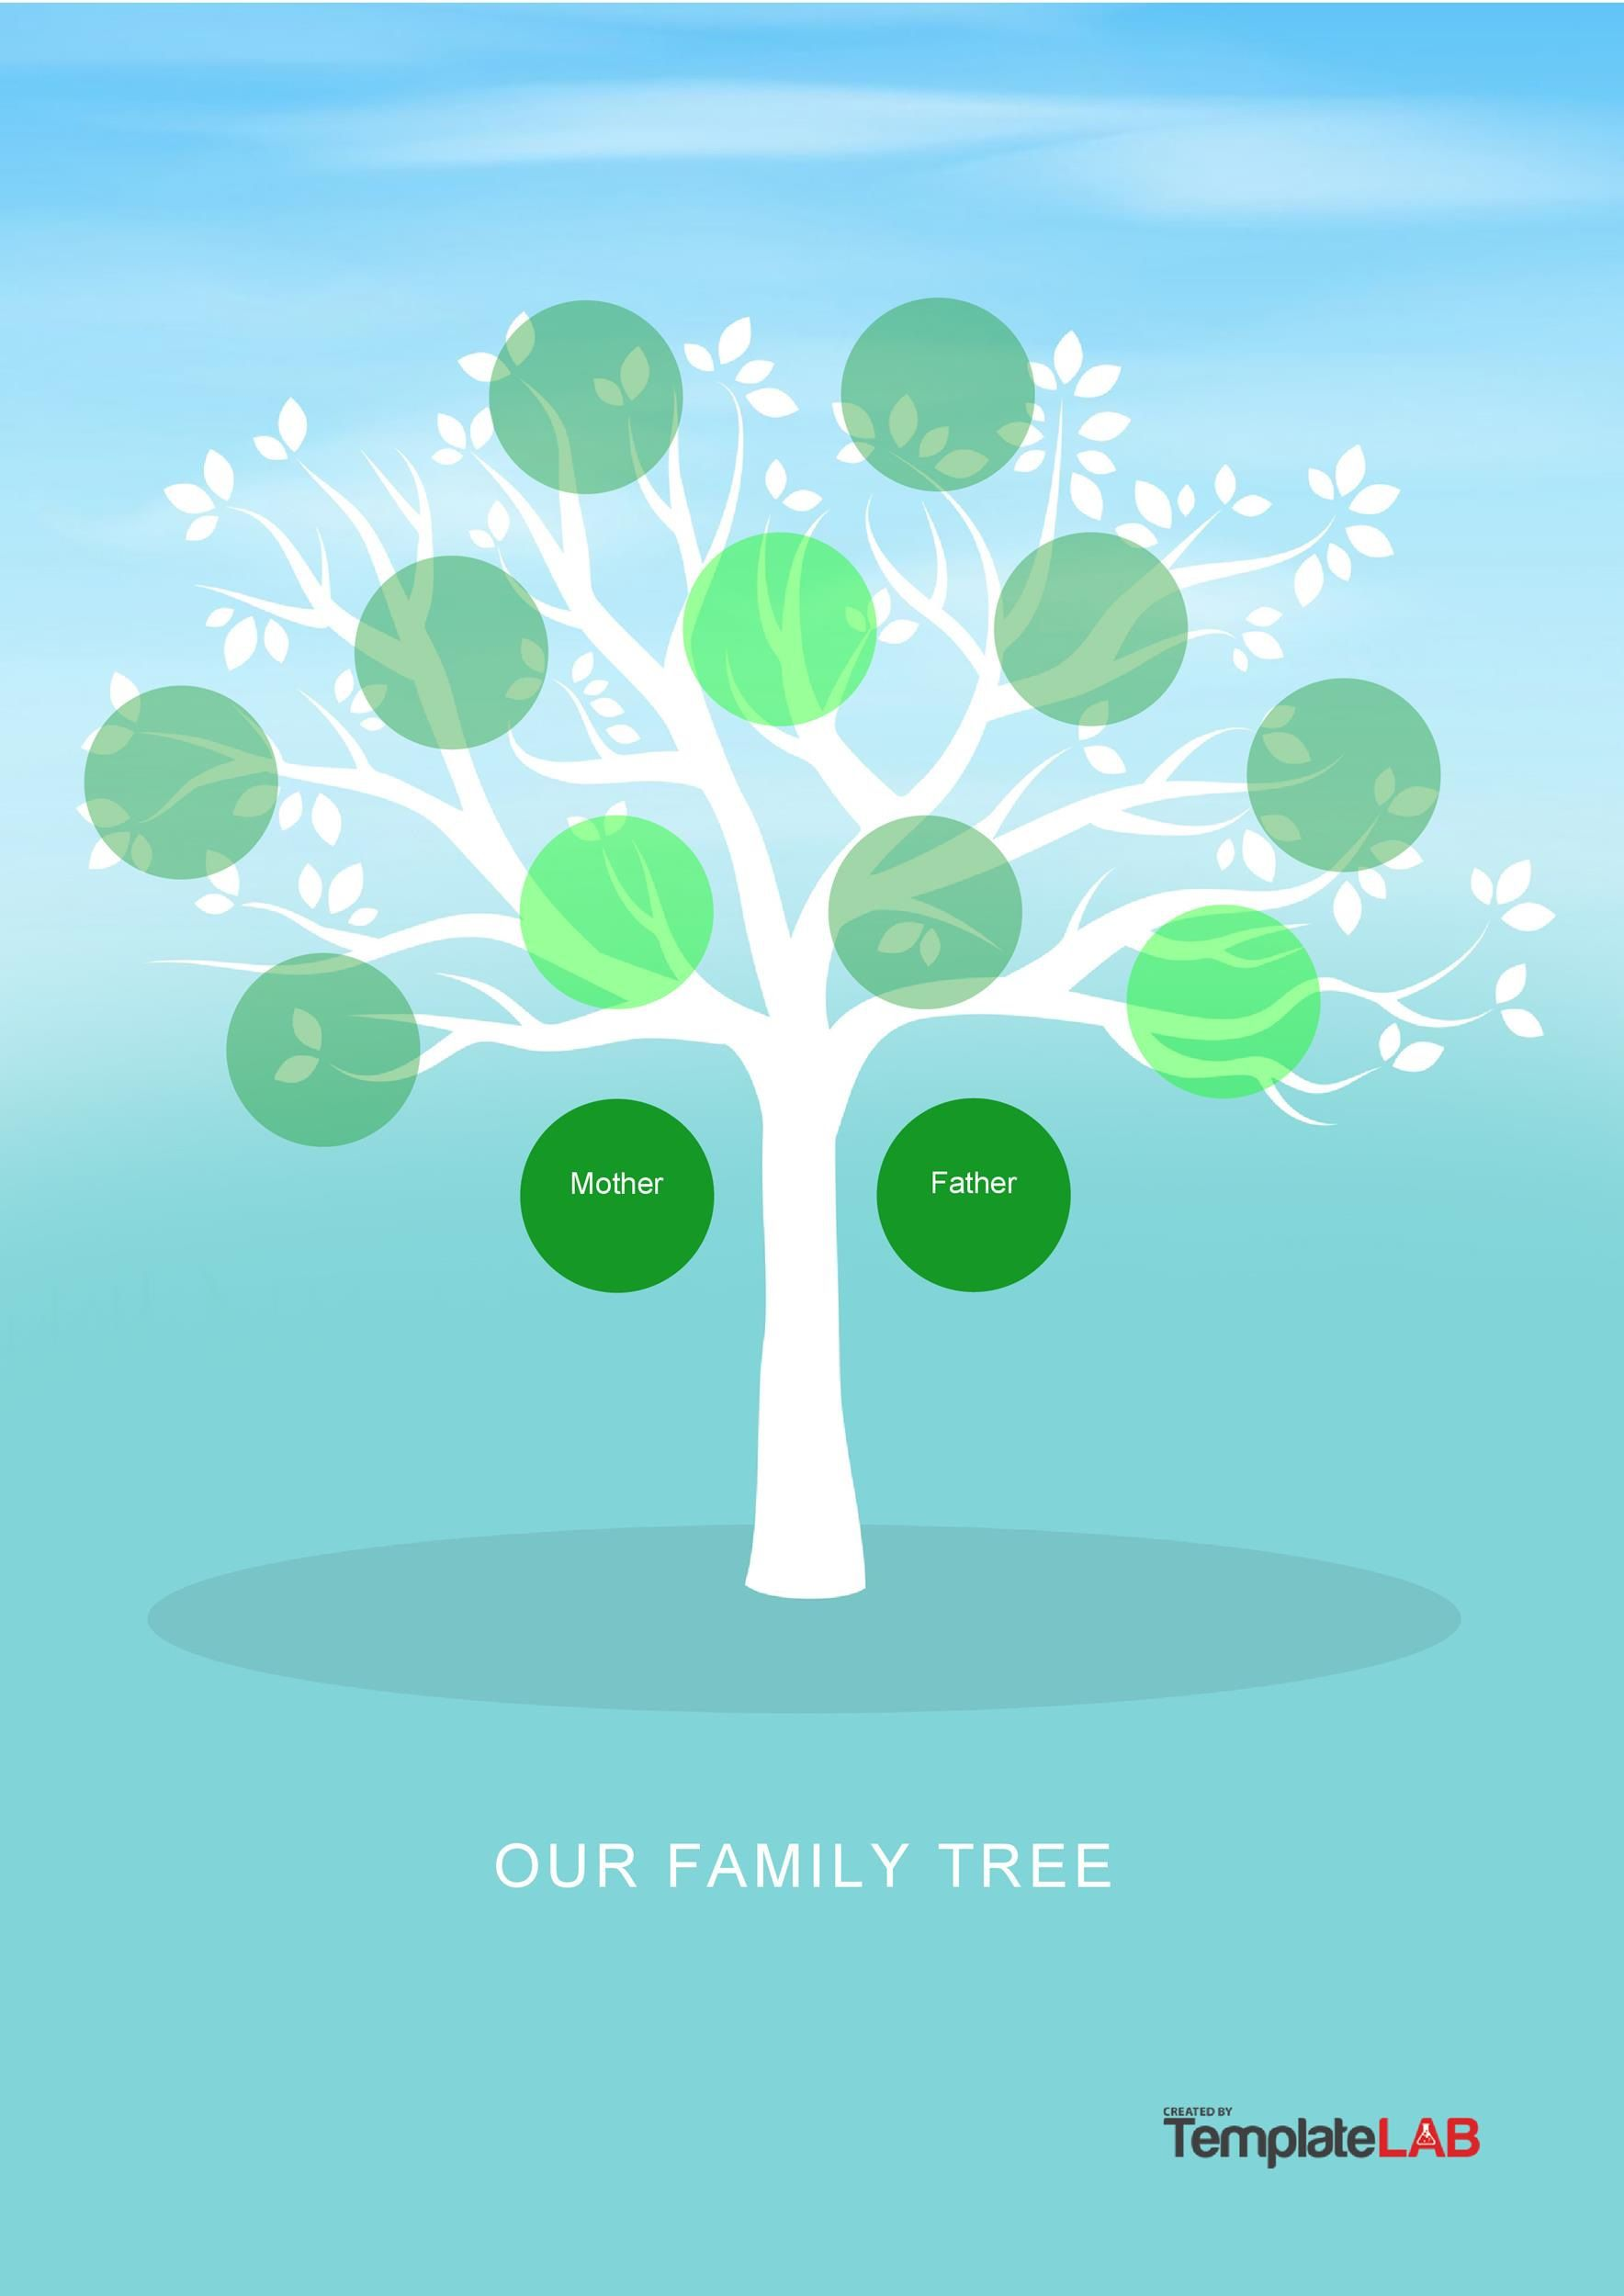 004 Top Family Tree Template Word Free Download Idea Full